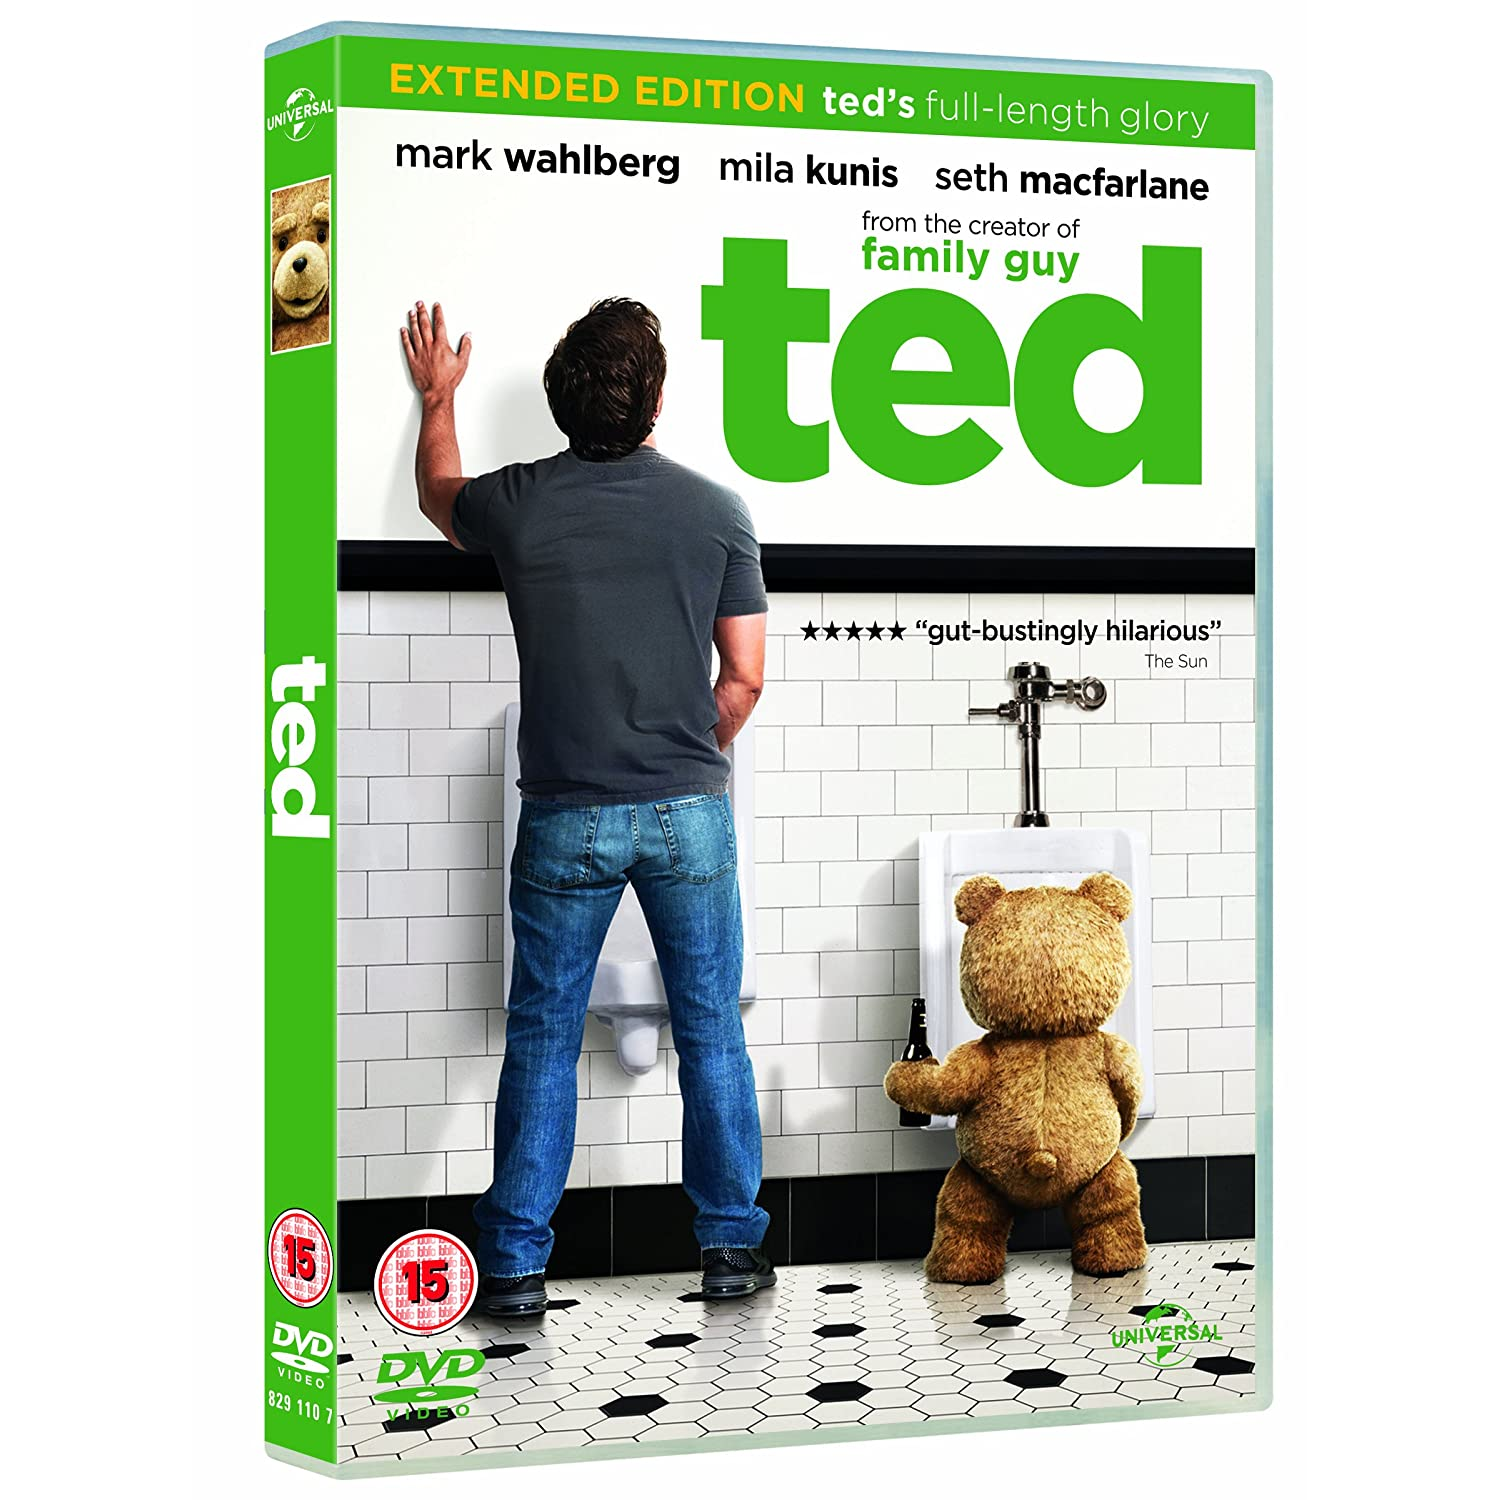 Ted Bears All For Press